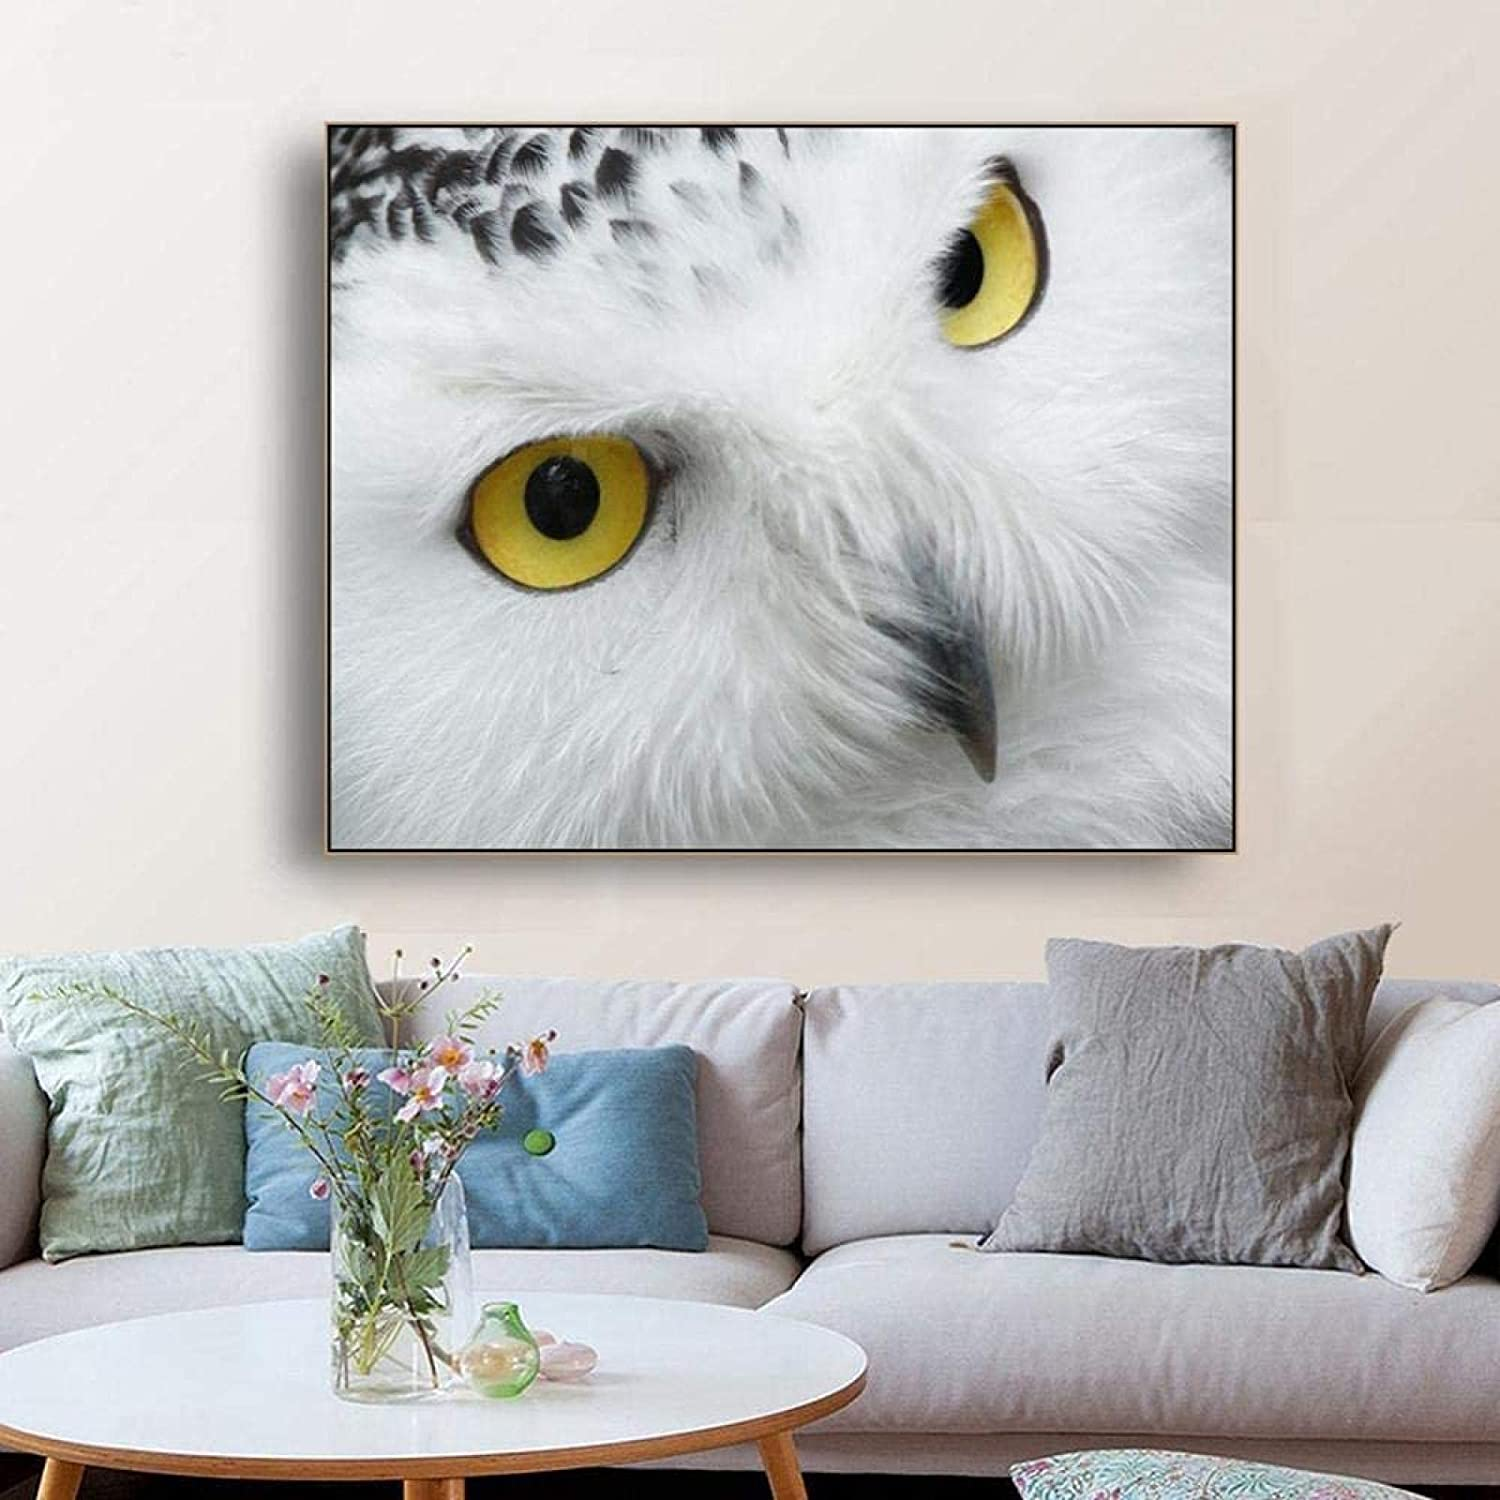 Canvas picture Snowy Owl Animals Decor Wall Art Print Canvas Painting Decorative Picture for Living Room Bedroom Home Decor27.6x35.4 in(70x90cm) no frame